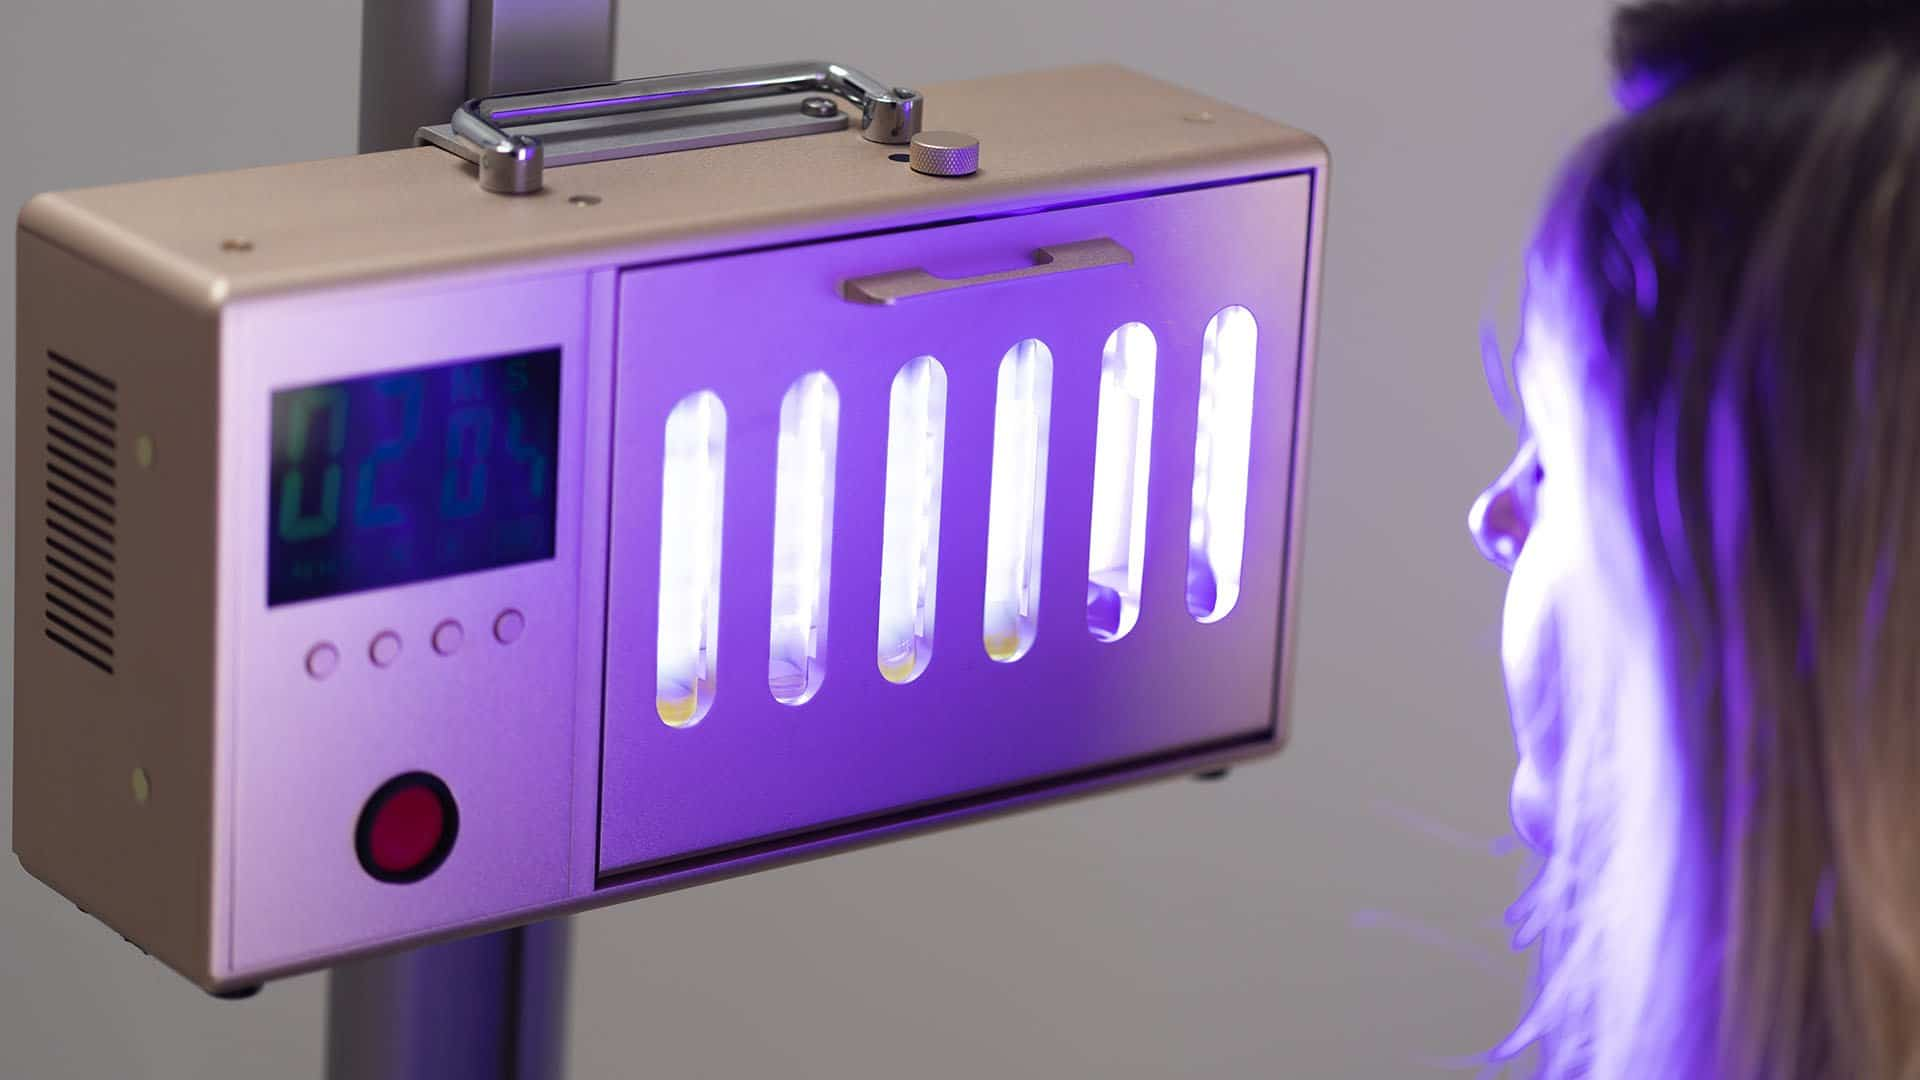 Biophotonic HALO Light Therapy in Arizona that uses HALO Therapy